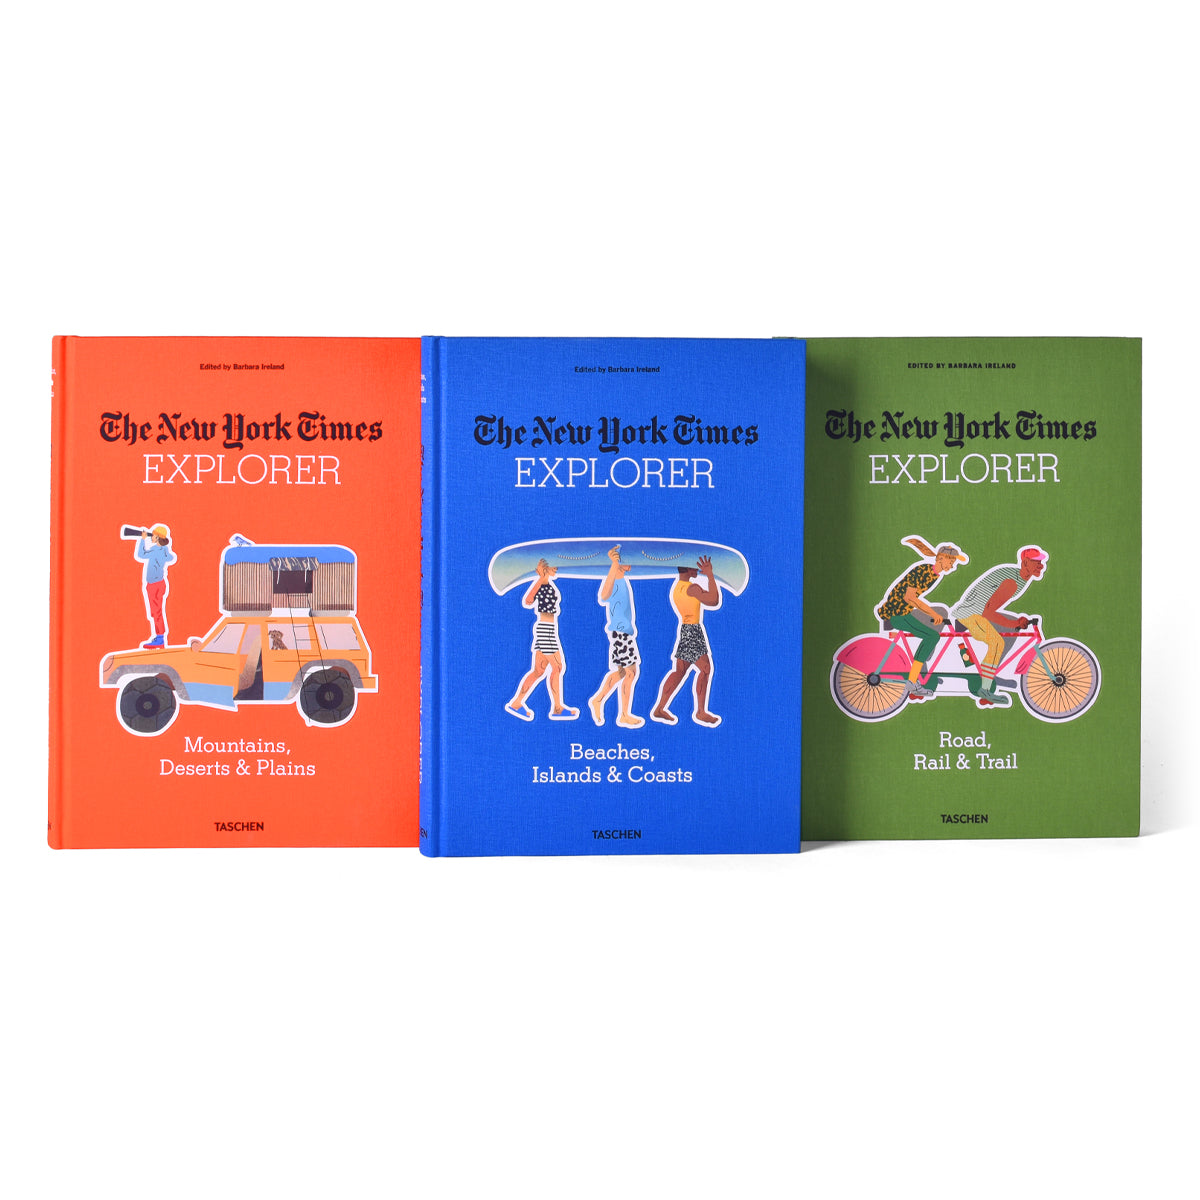 Taschen New York Times Explorer Book Set